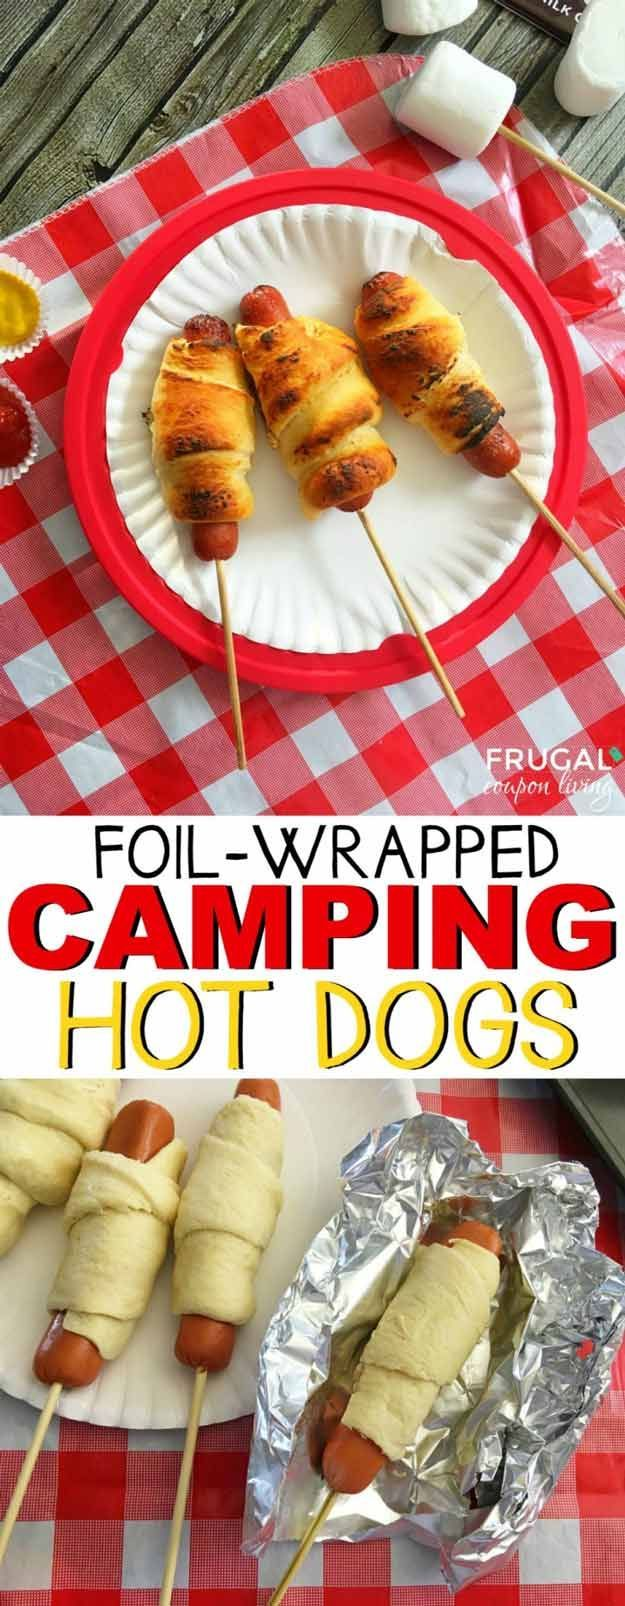 Camping Hot Dogs | Easy Foil Wrapped Camping Recipes For Outdoor Meals